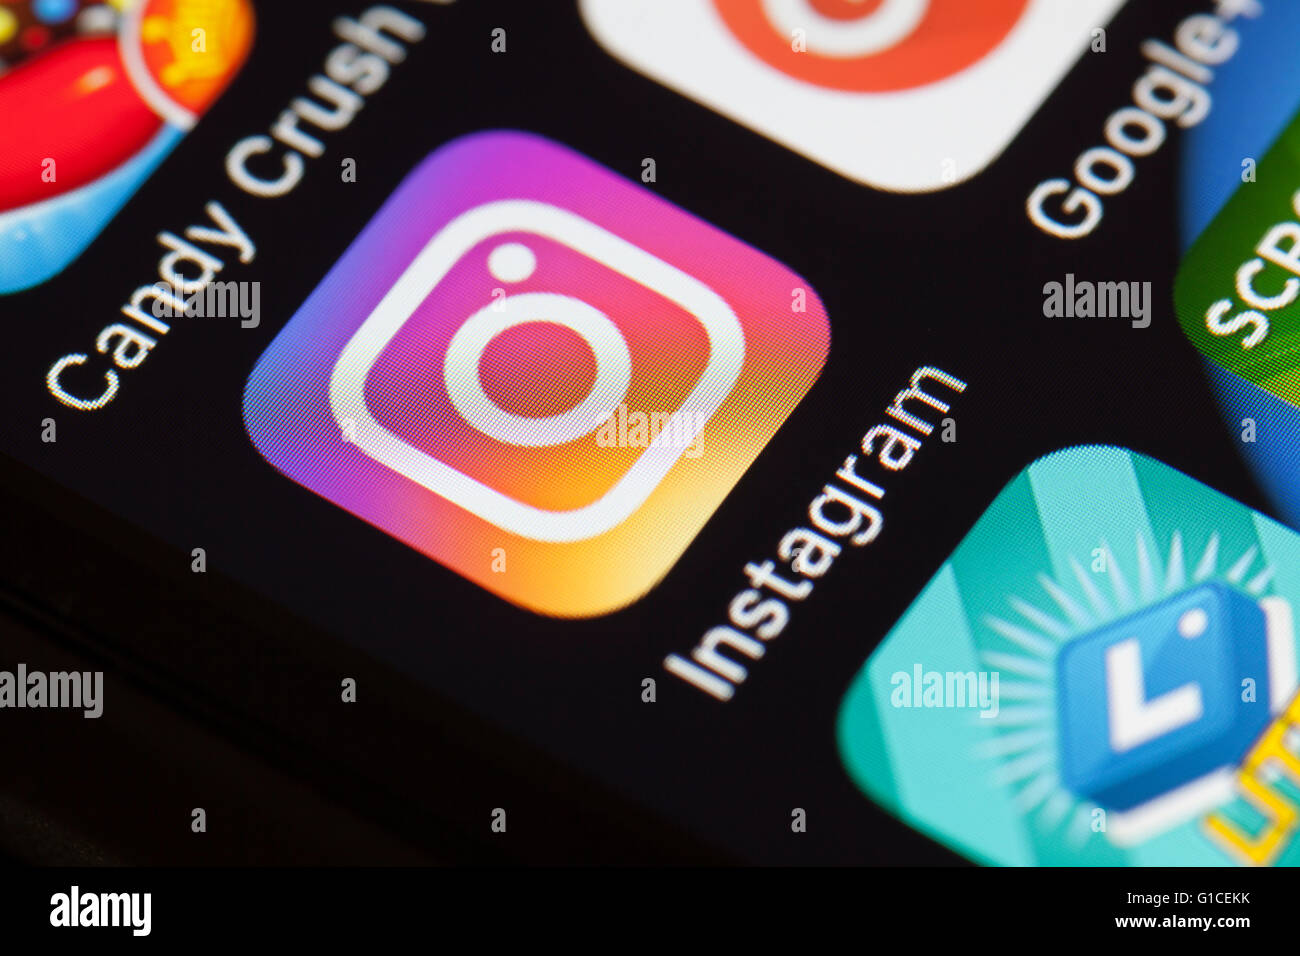 how to download photos from instagram to phone